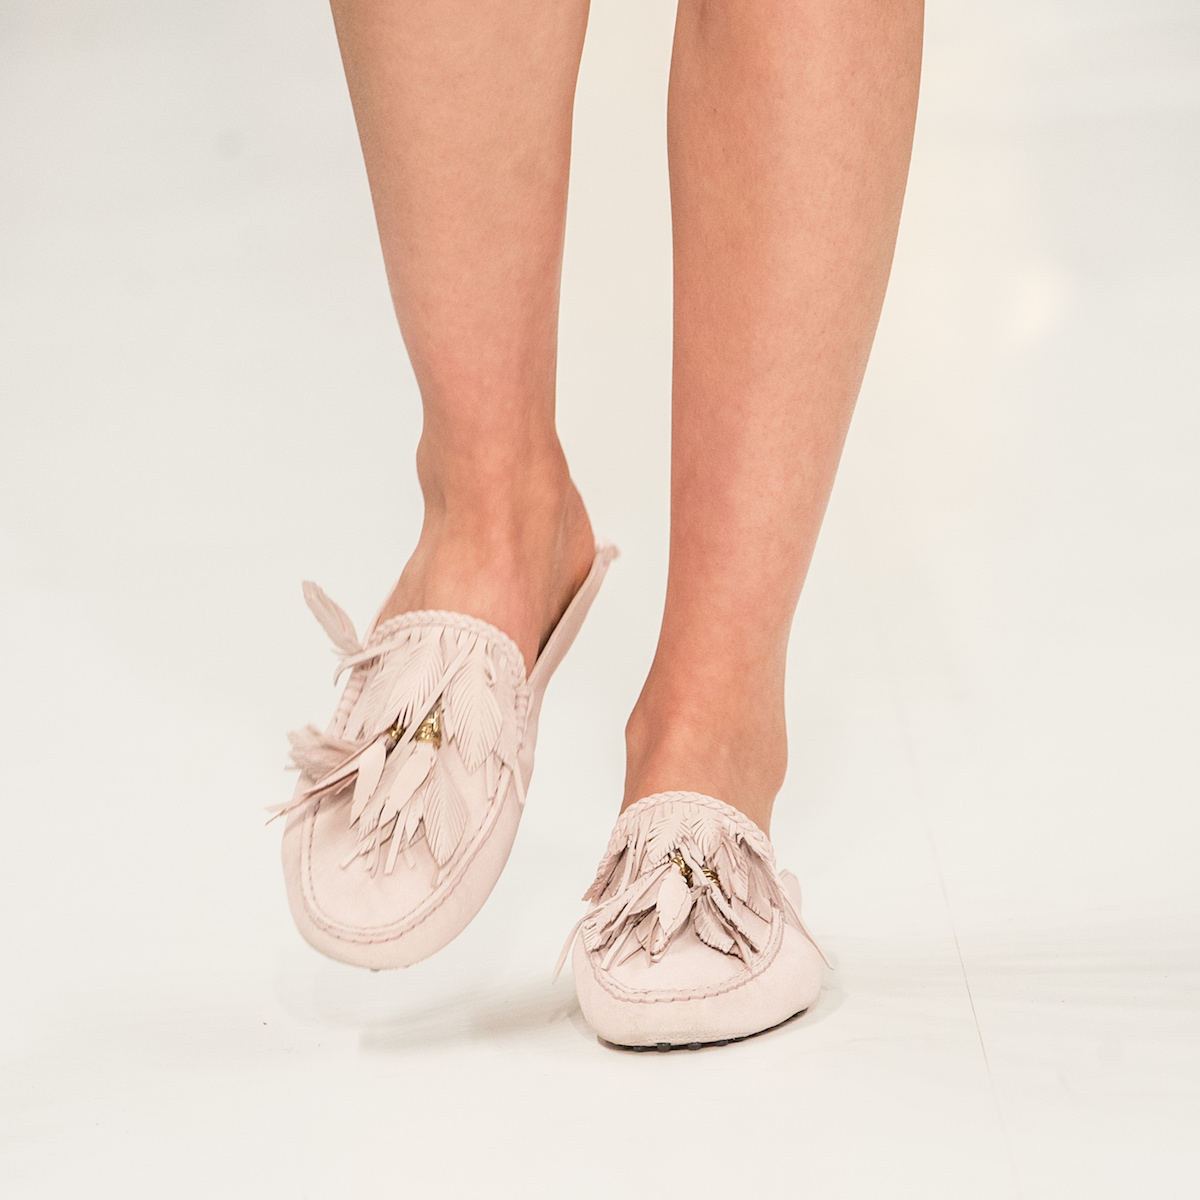 close-up-shoes-36.jpg